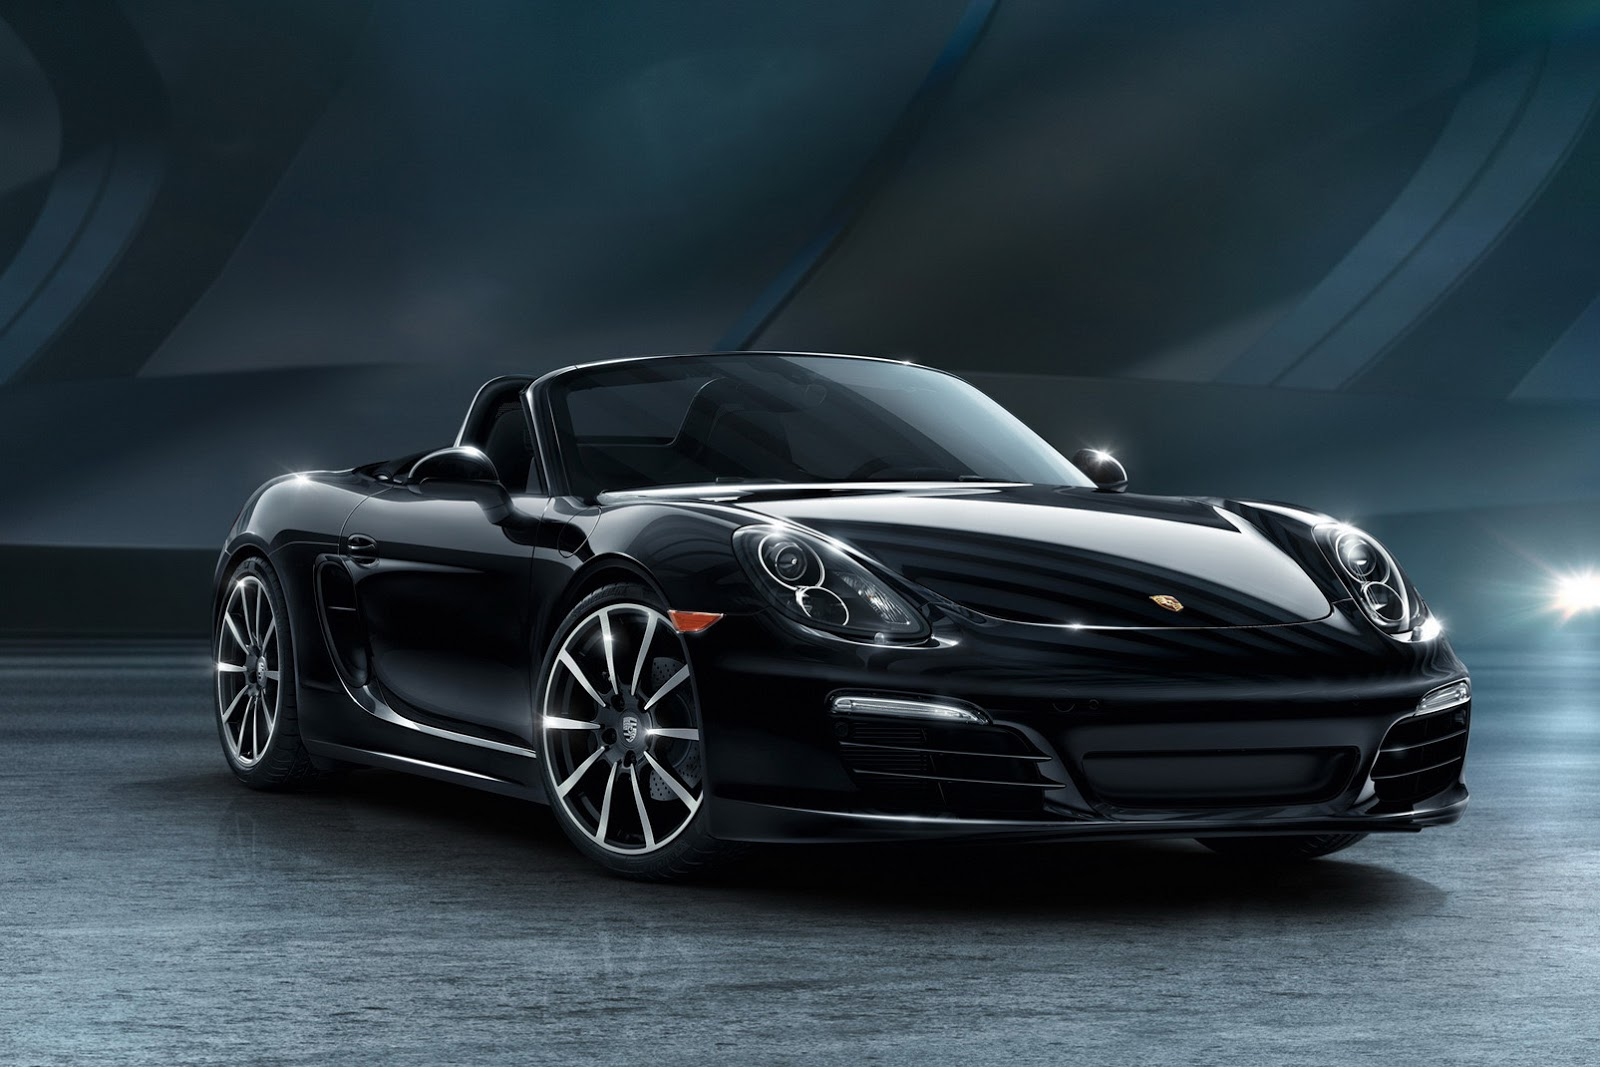 Here S Your Gallery Of Porsche S New 911 And Boxster Black Editions Carscoops